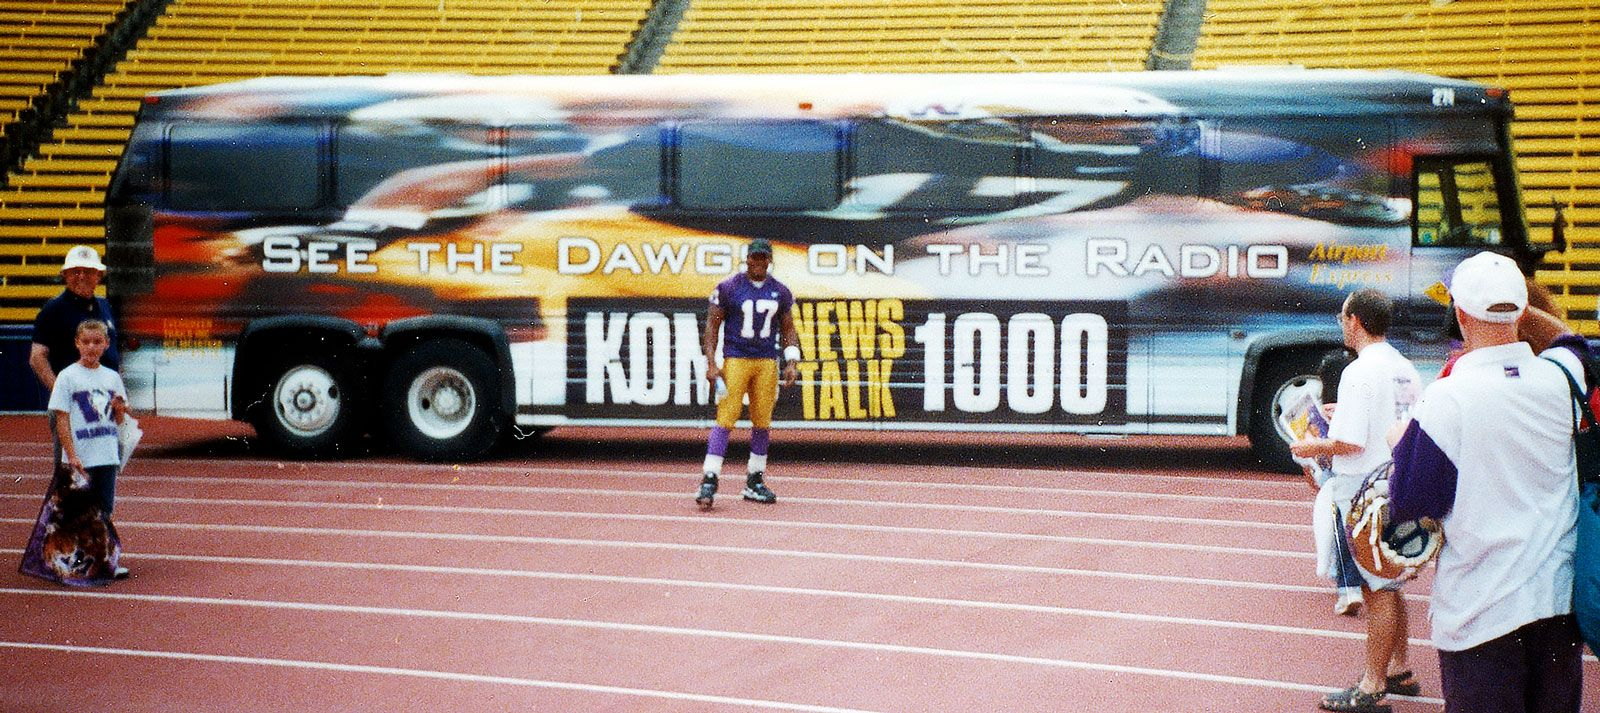 Full bus wrap for KOMO and the UW Huskies